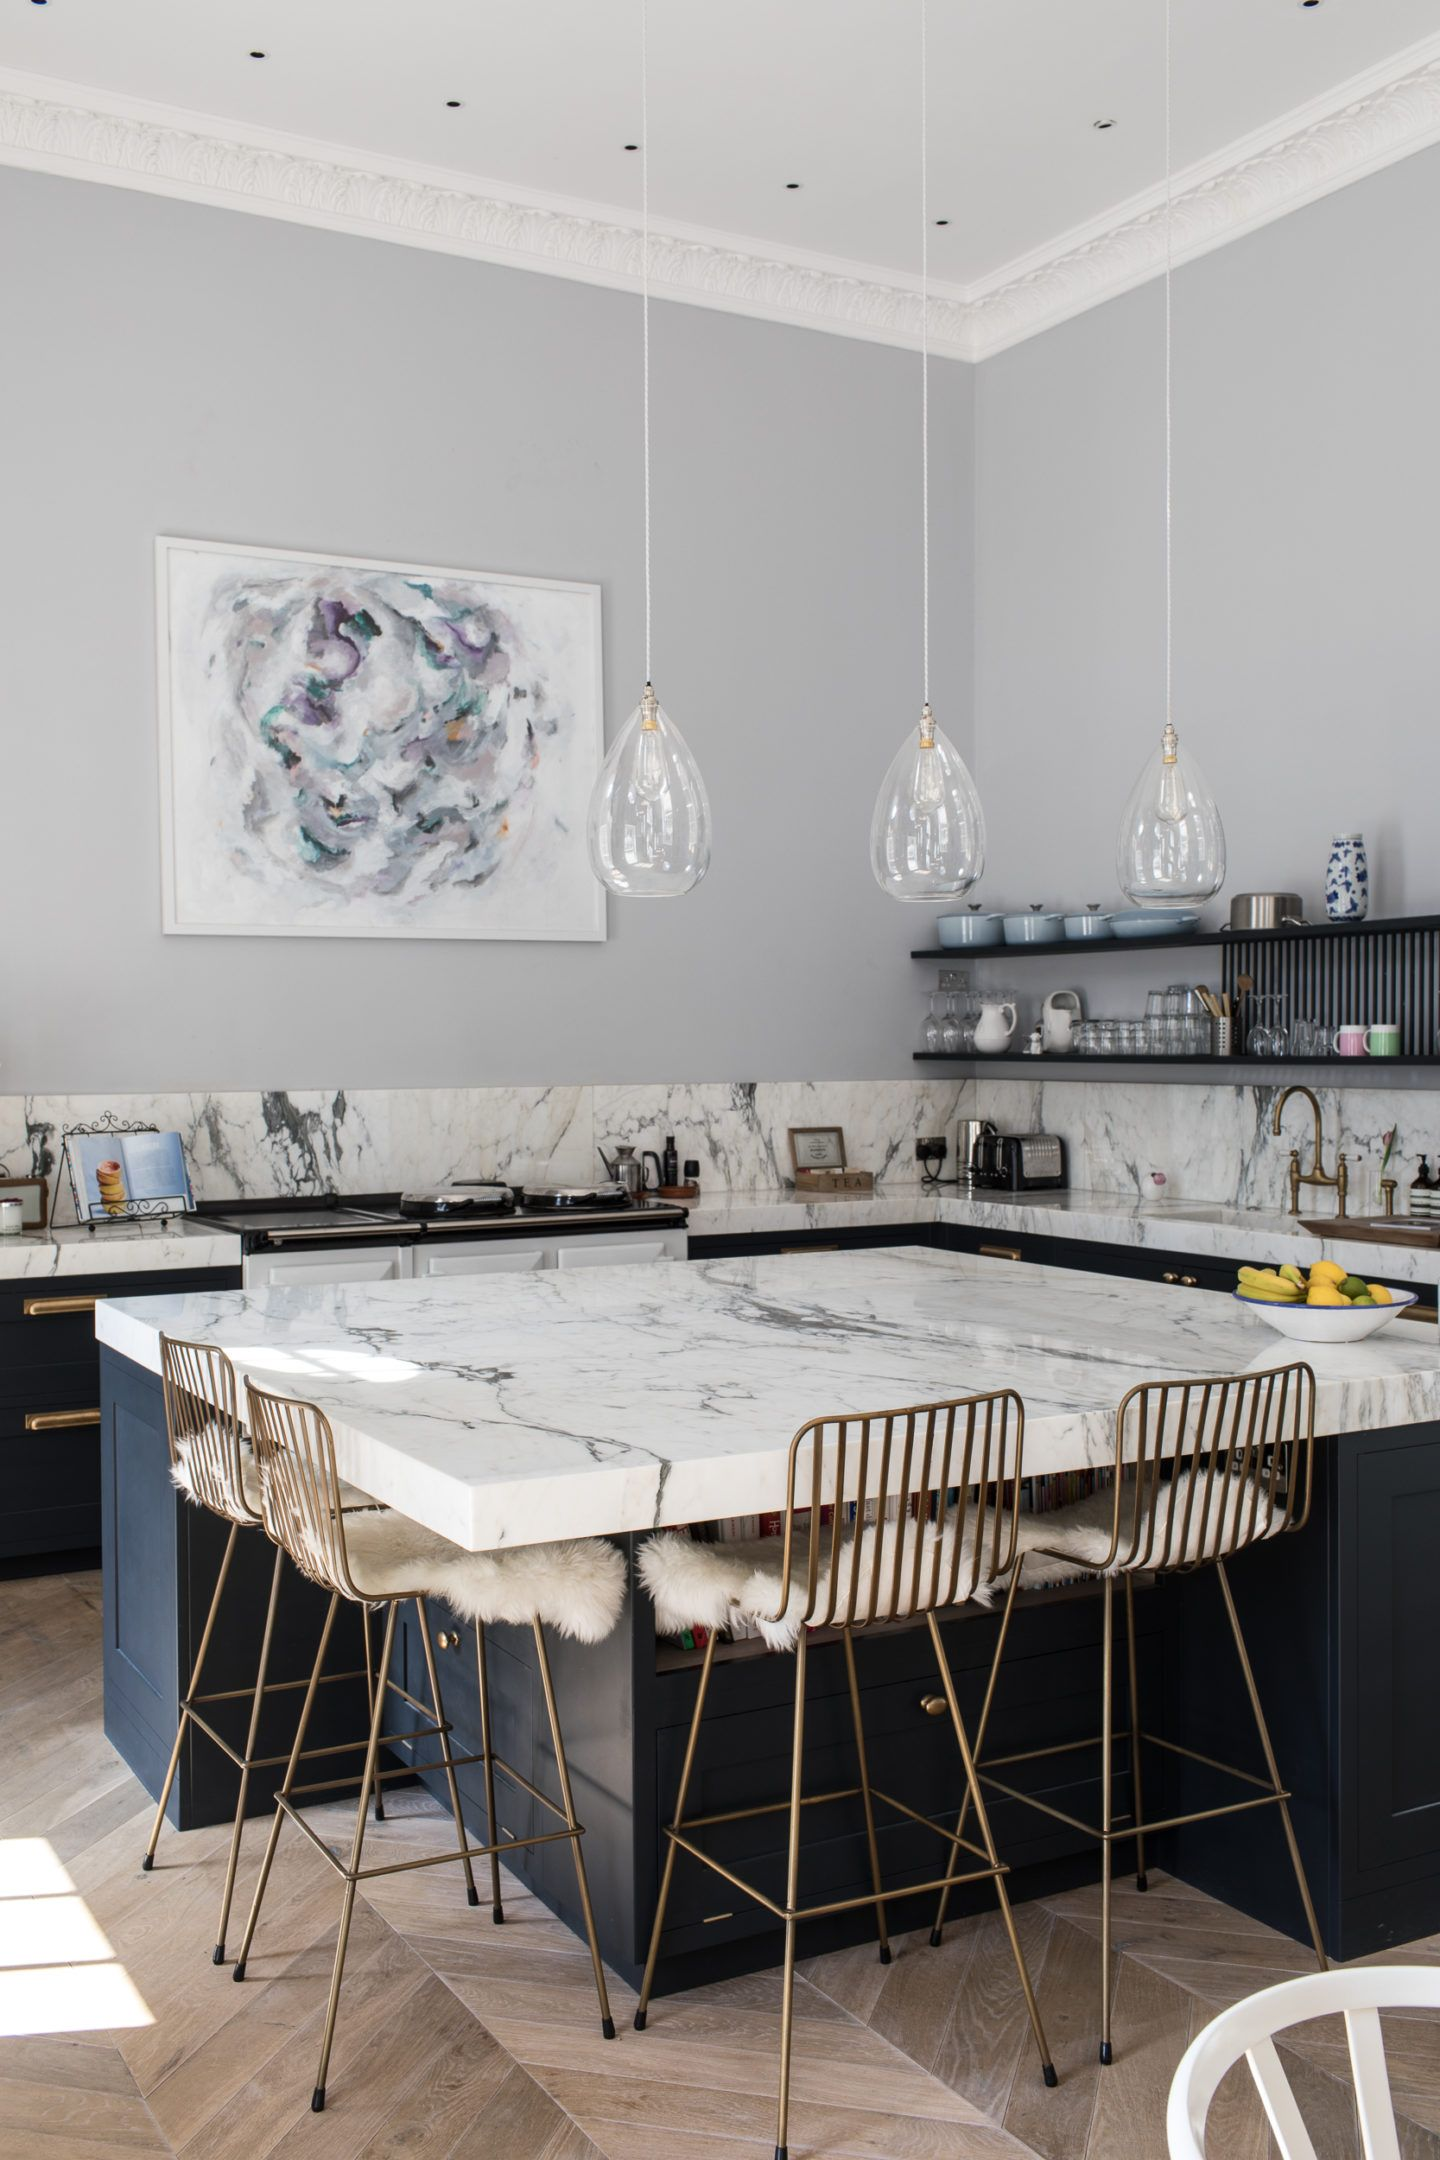 Anatomy of the Ultimate Kitchen Island | Cocinas, Interiores y Hogar